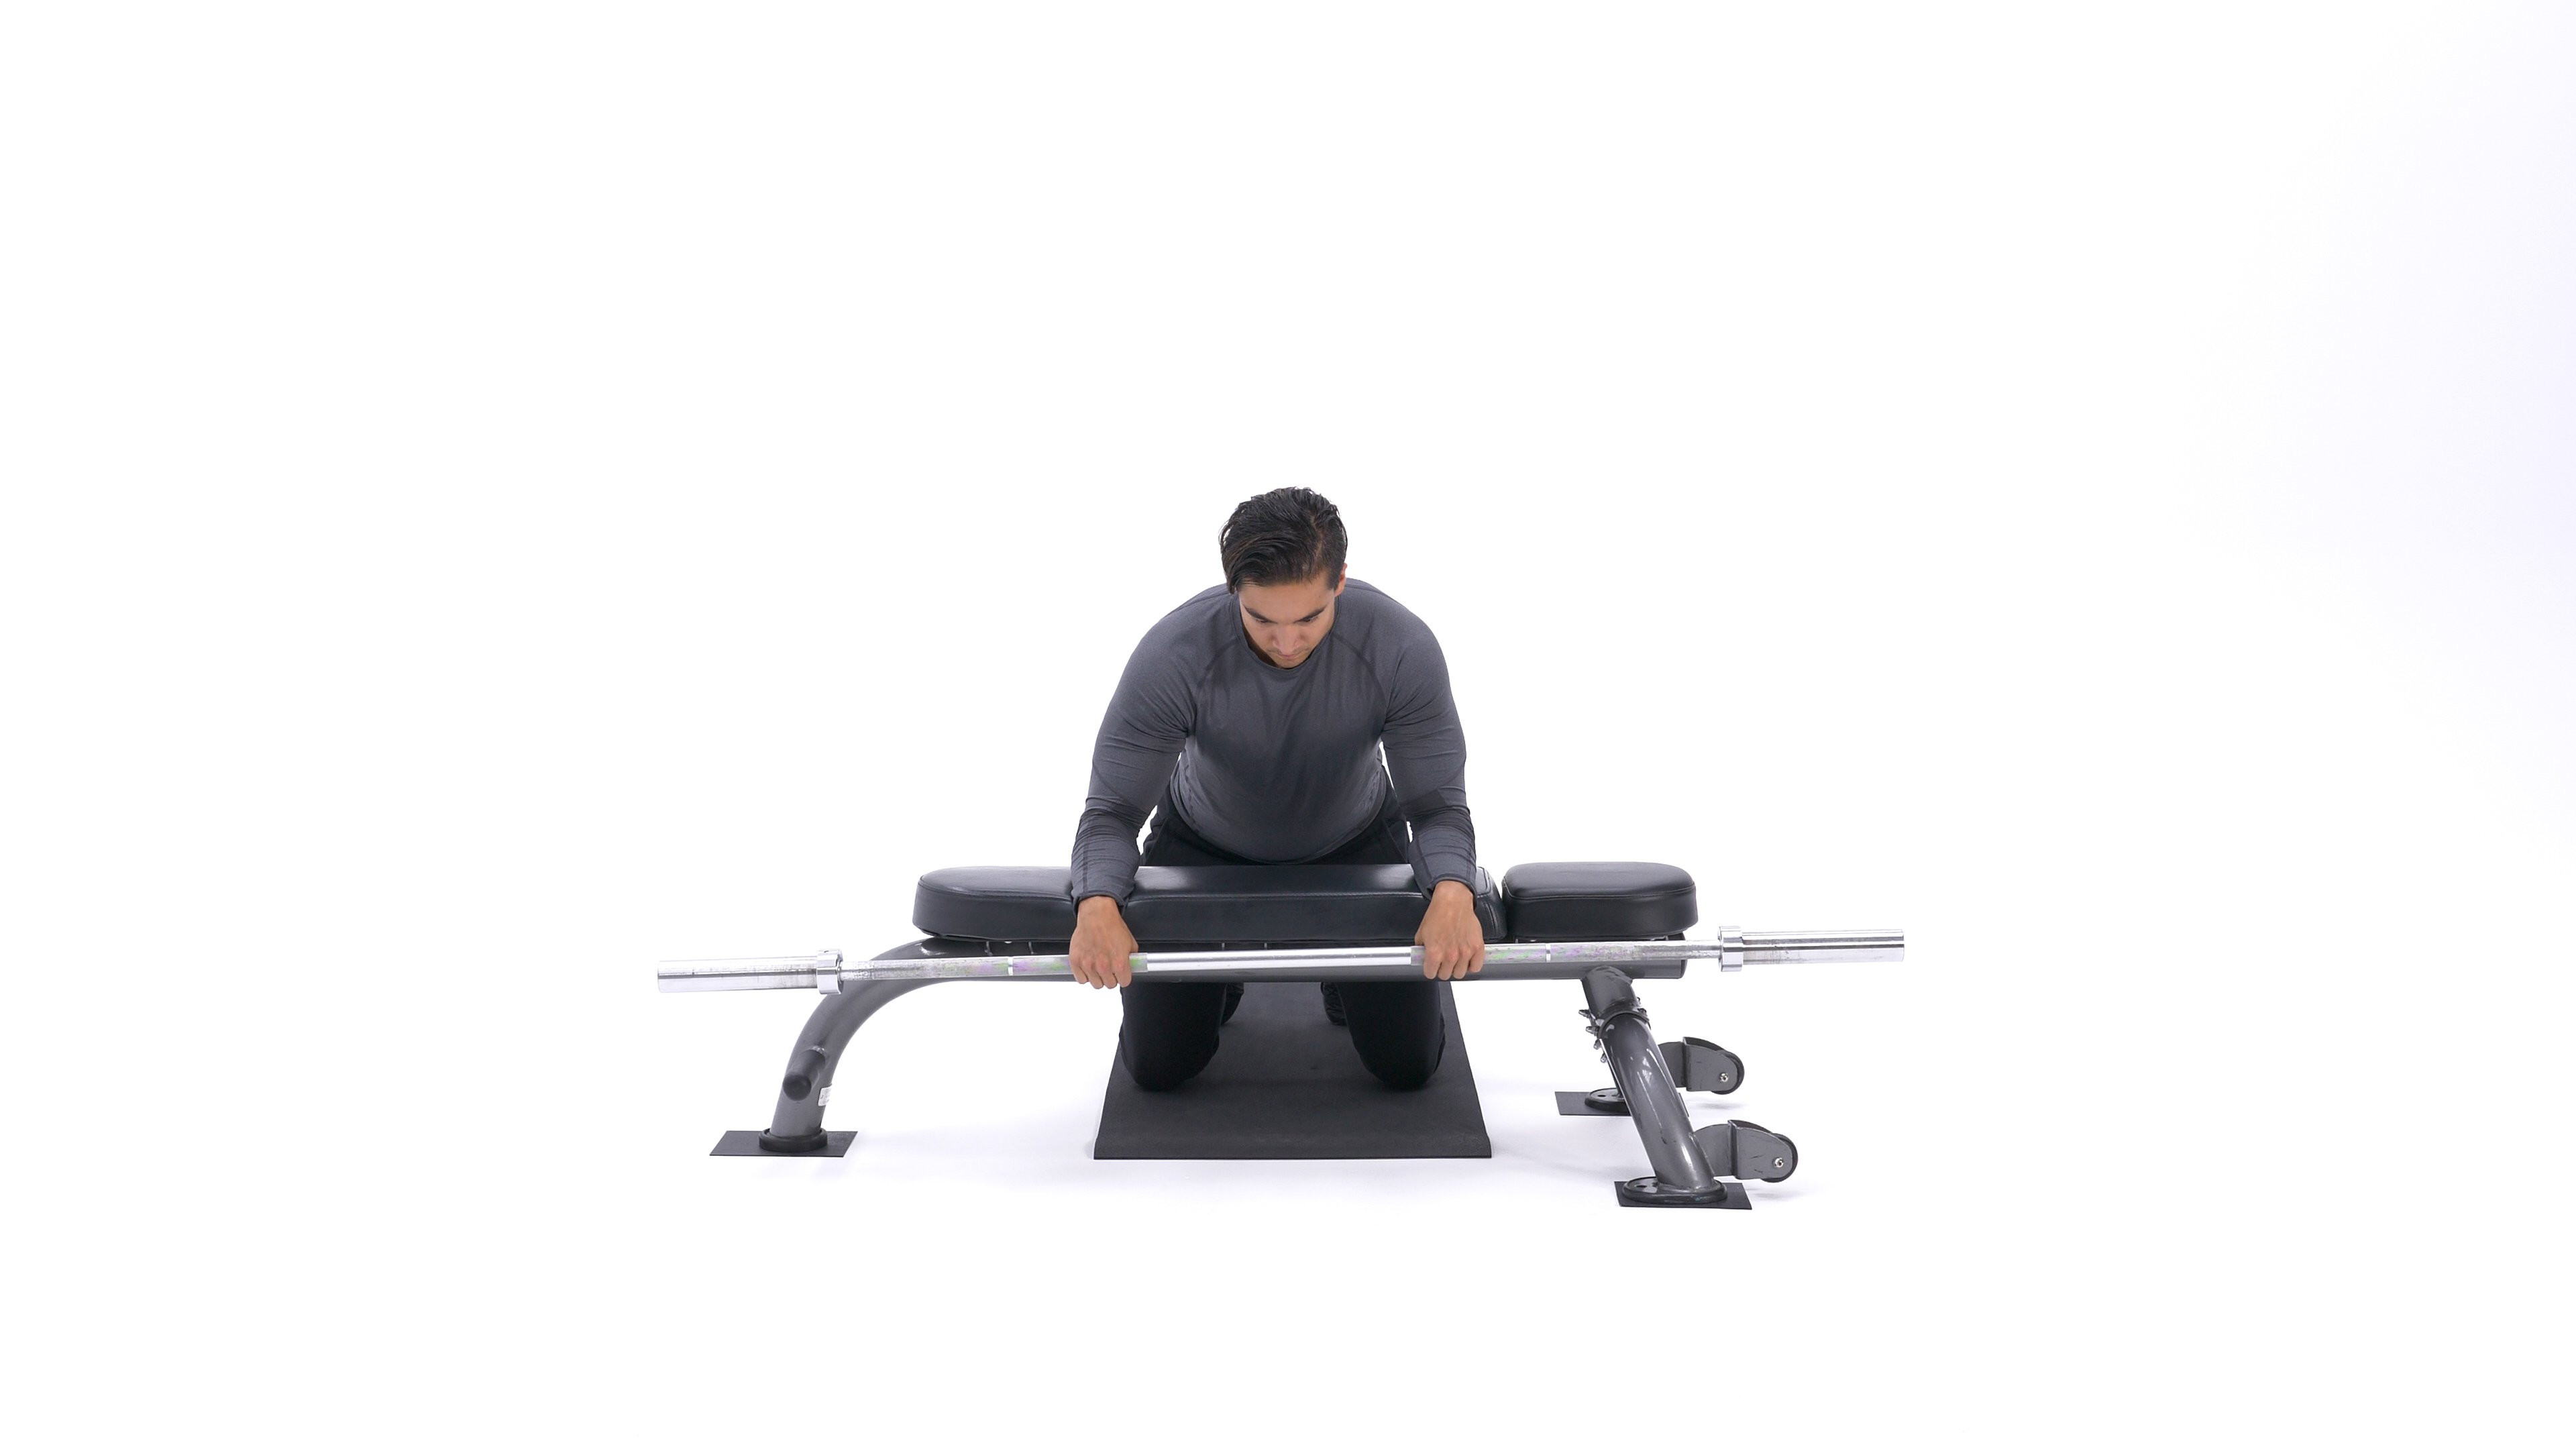 Palms-down wrist curl over bench image